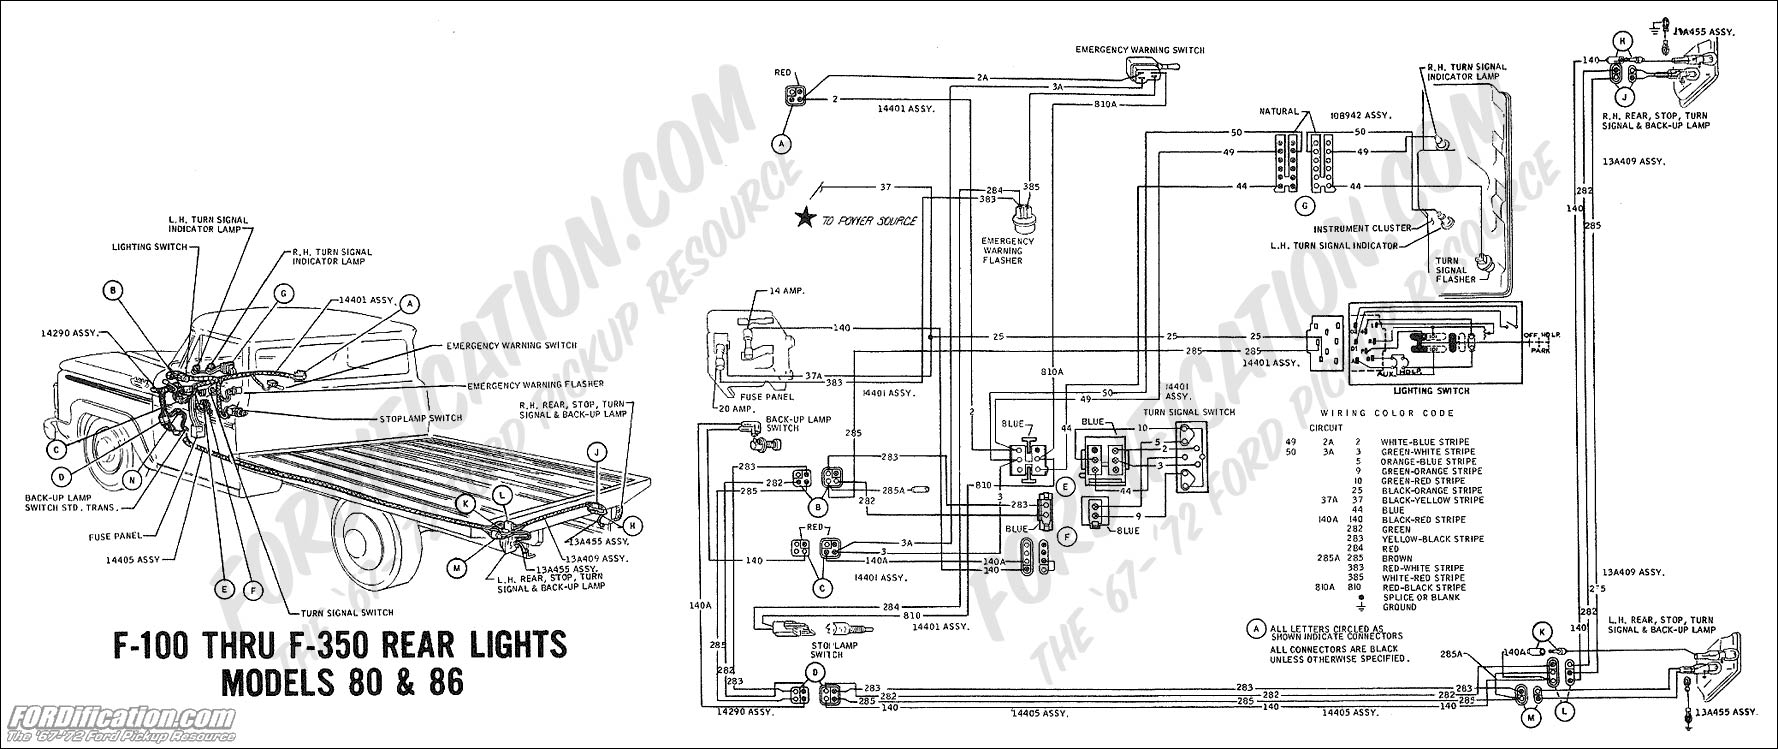 1995 Ford Wiring Diagrams 2013 Toyota Tacoma Fuse Box Diagram For Wiring Diagram Schematics